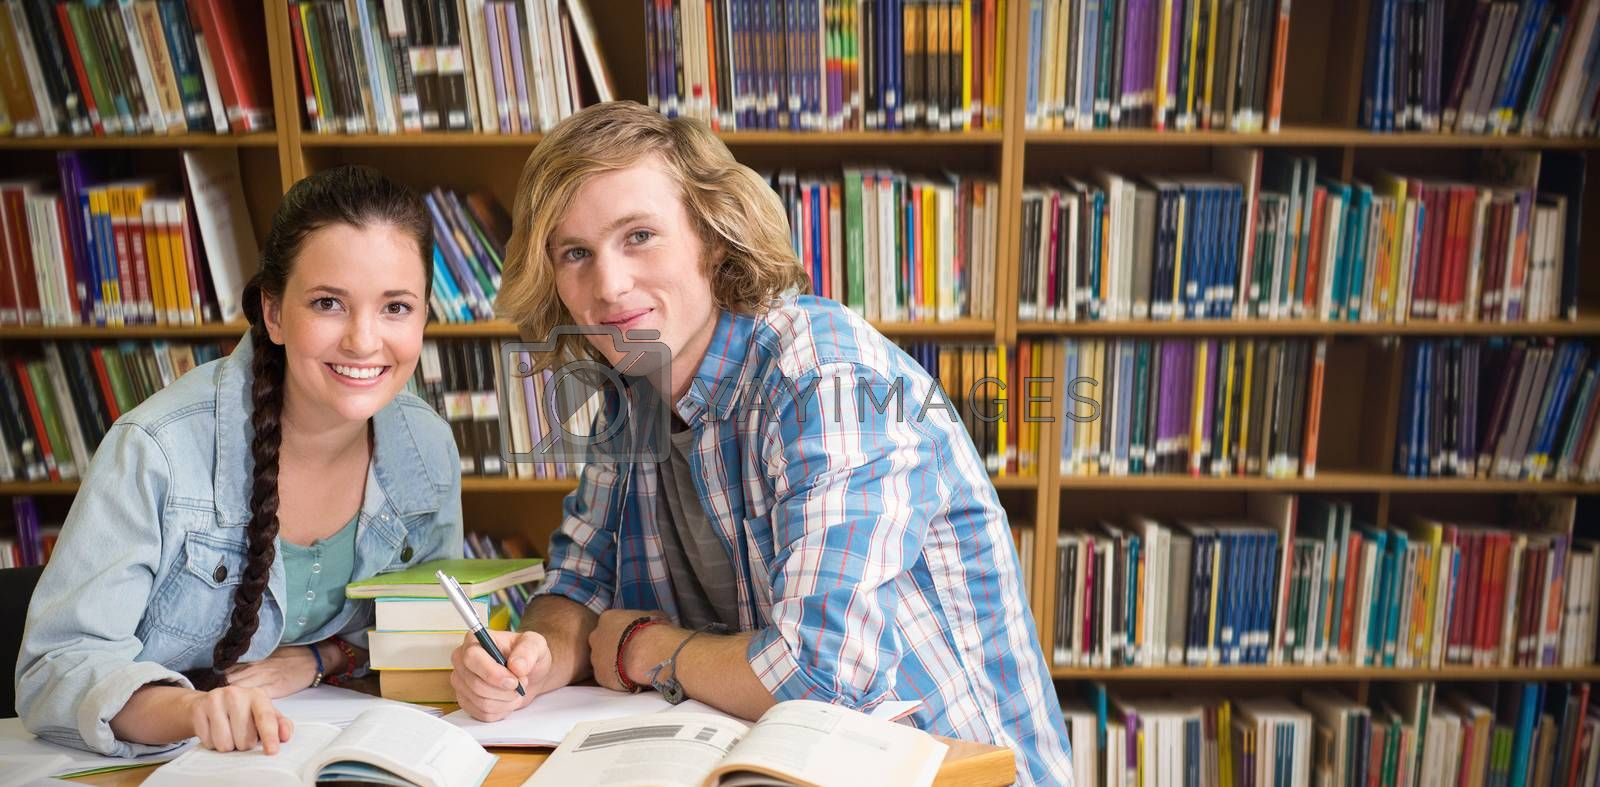 Composite image of college students doing homework in library by Wavebreakmedia